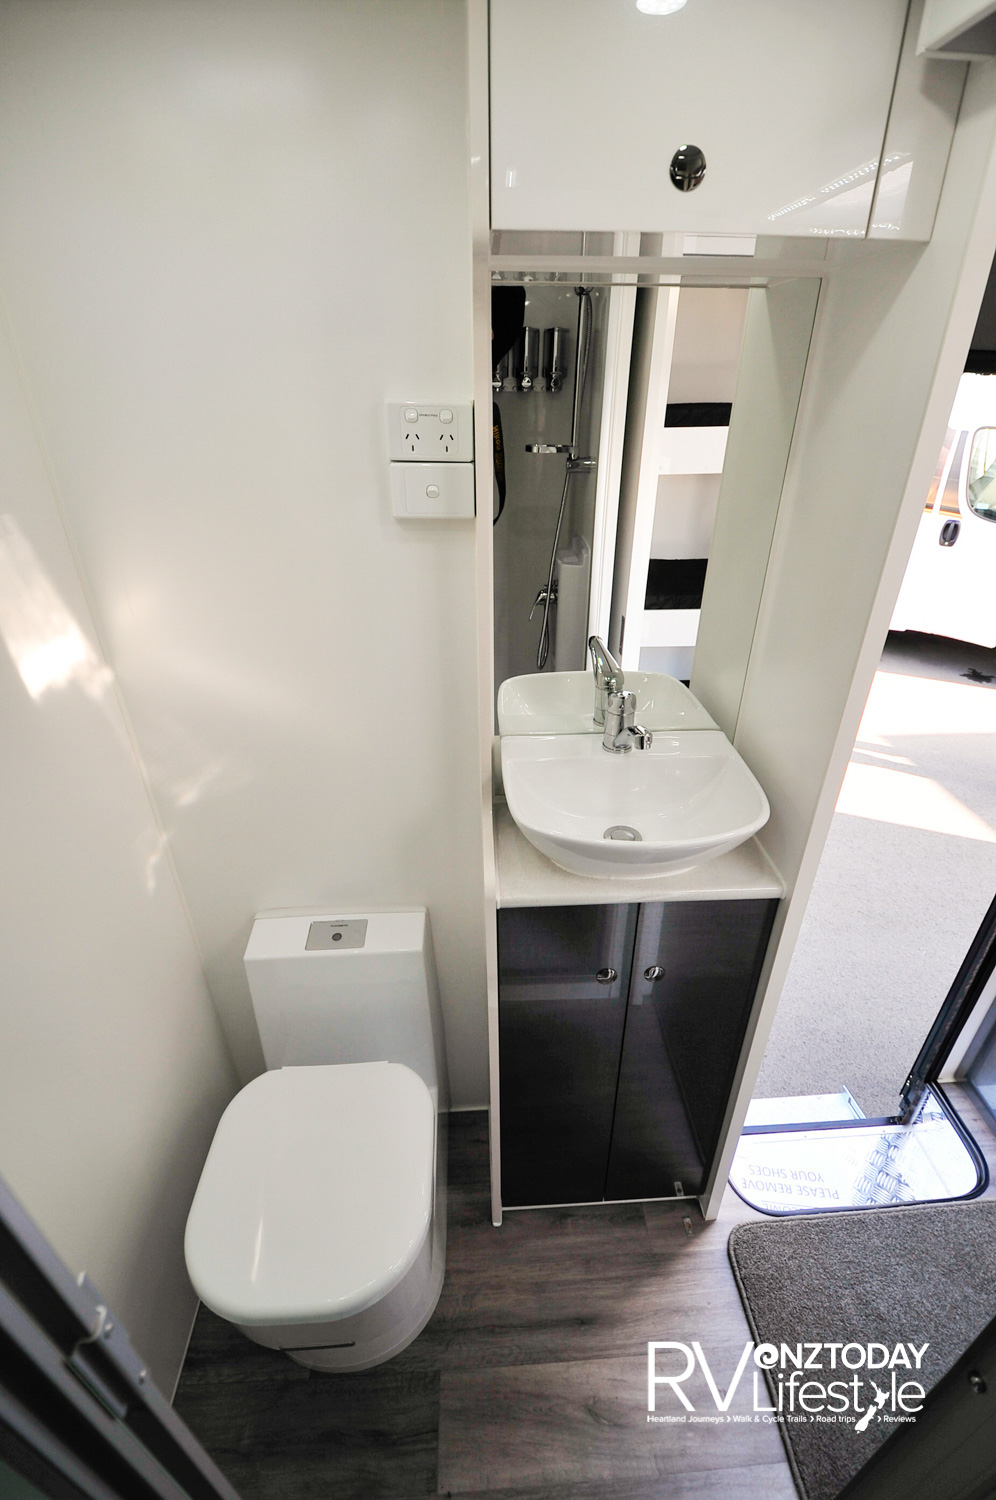 Pedestal cassette toilet with 12V electric flush. Nice compact vanity unit with storage below and above, full-sized shower opposite